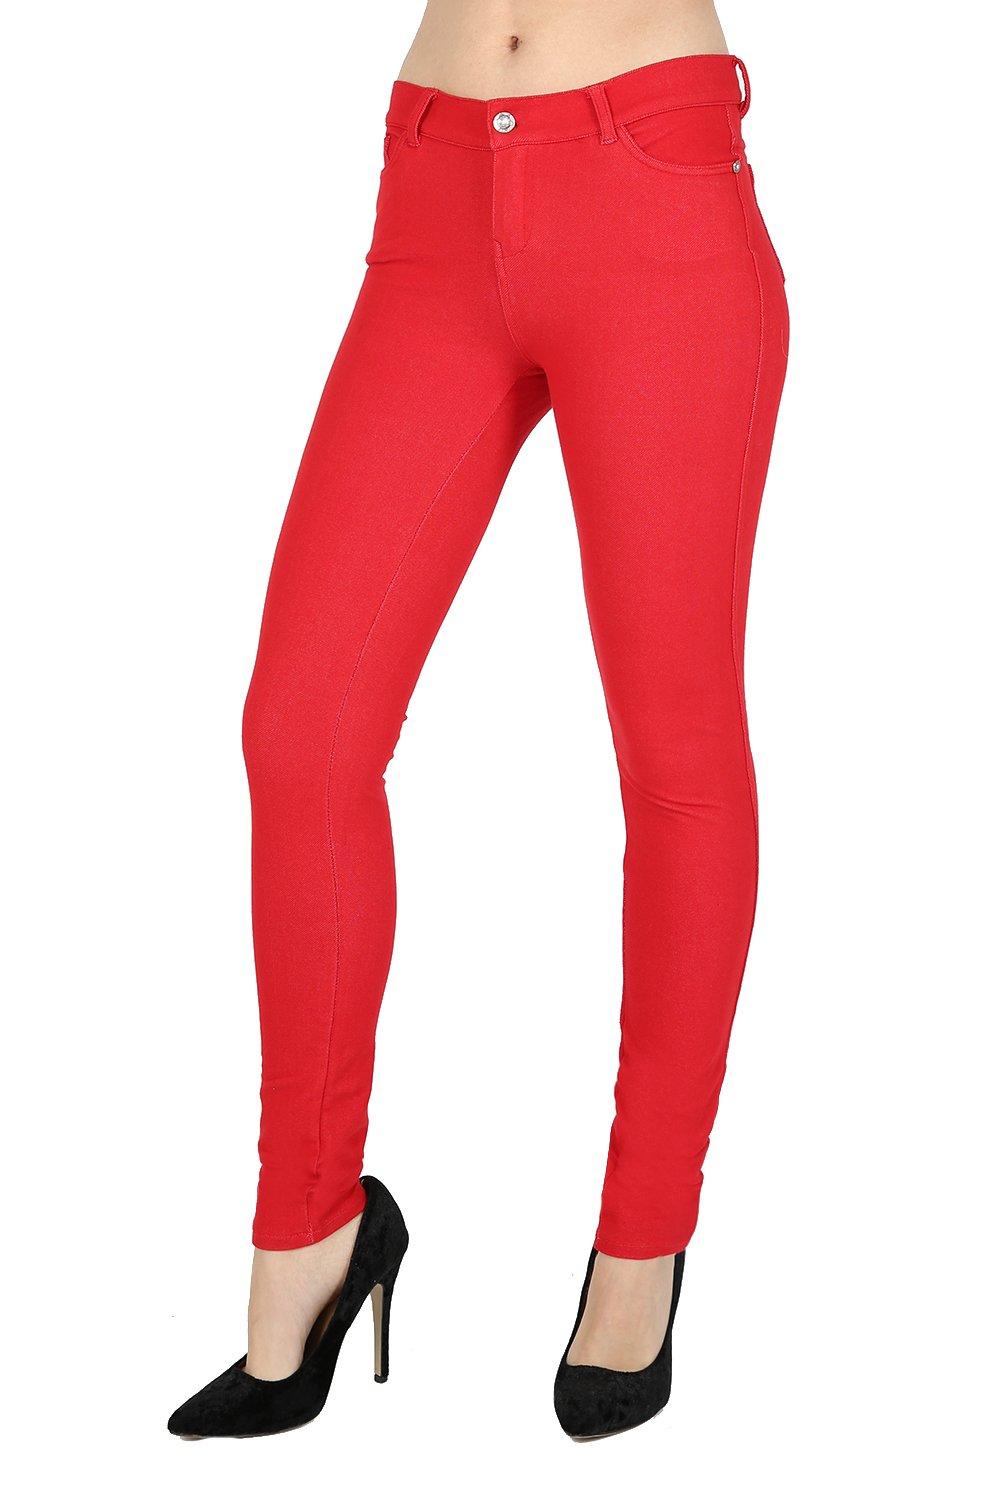 Fashion Instyle Skinny Womens Jeans Stretchy Jeggings Ladies New Fit Coloured Trousers